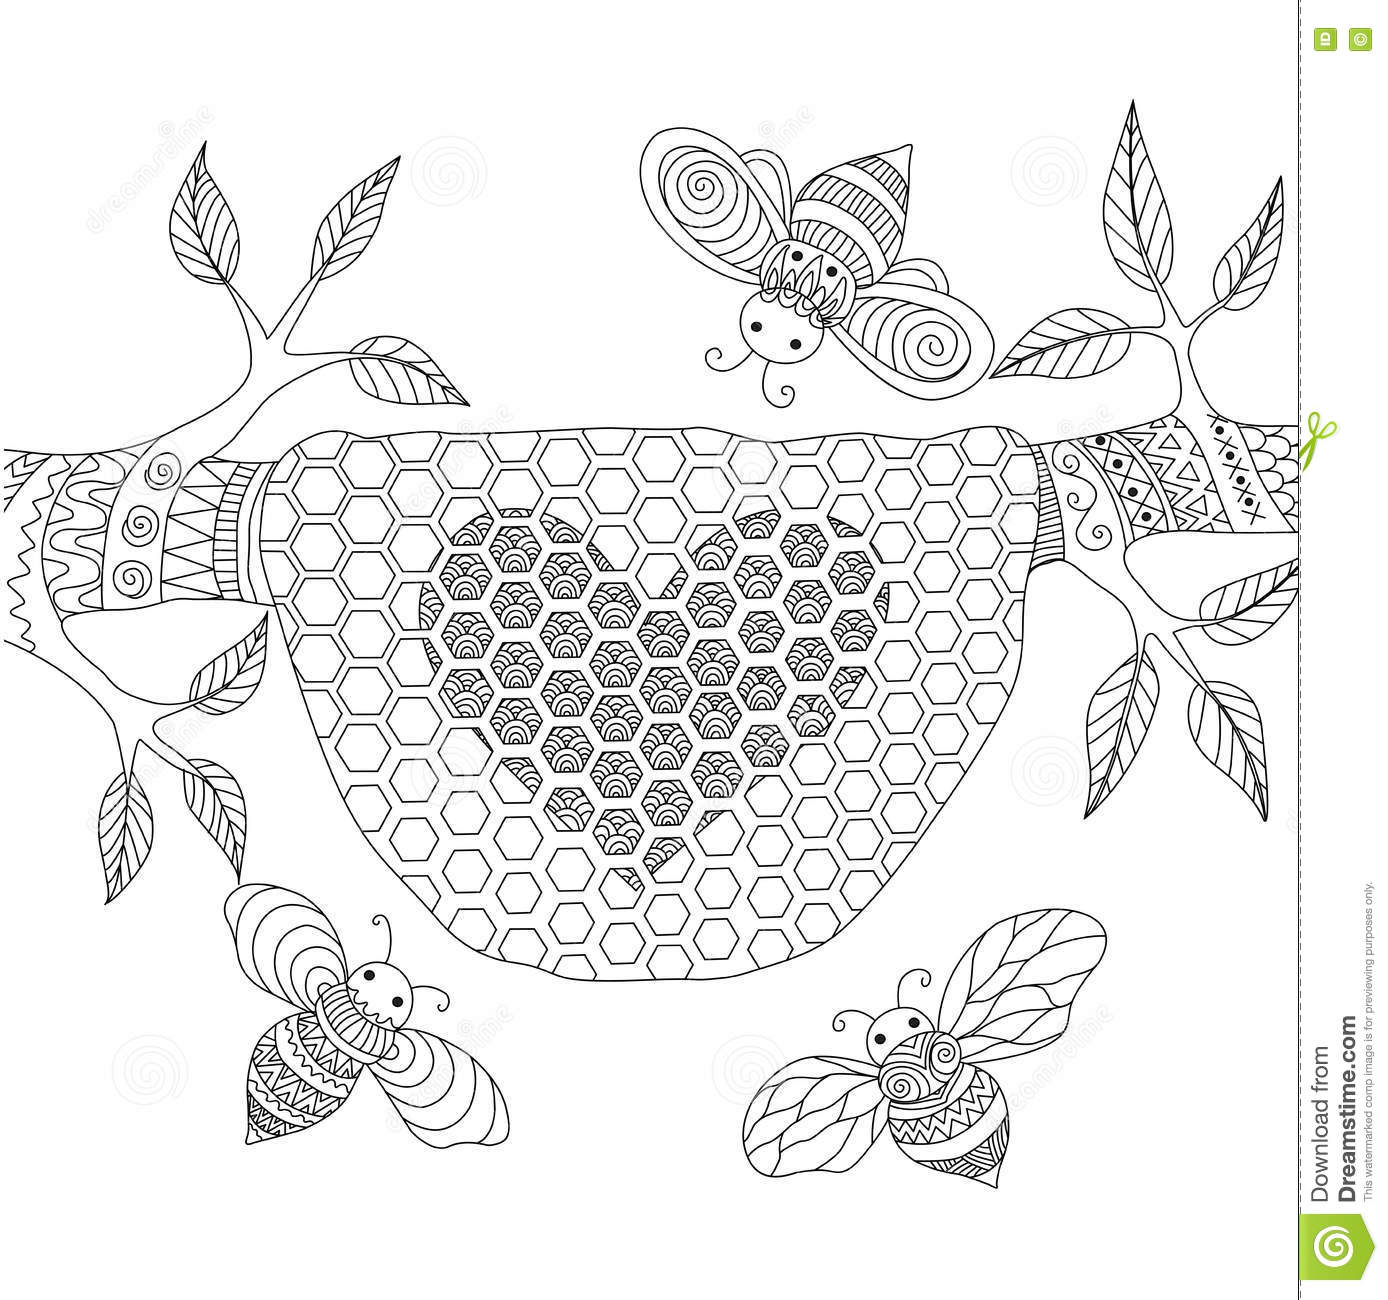 Line Art Design Of Honey Bees Flying Around Beehive Vector Illustration